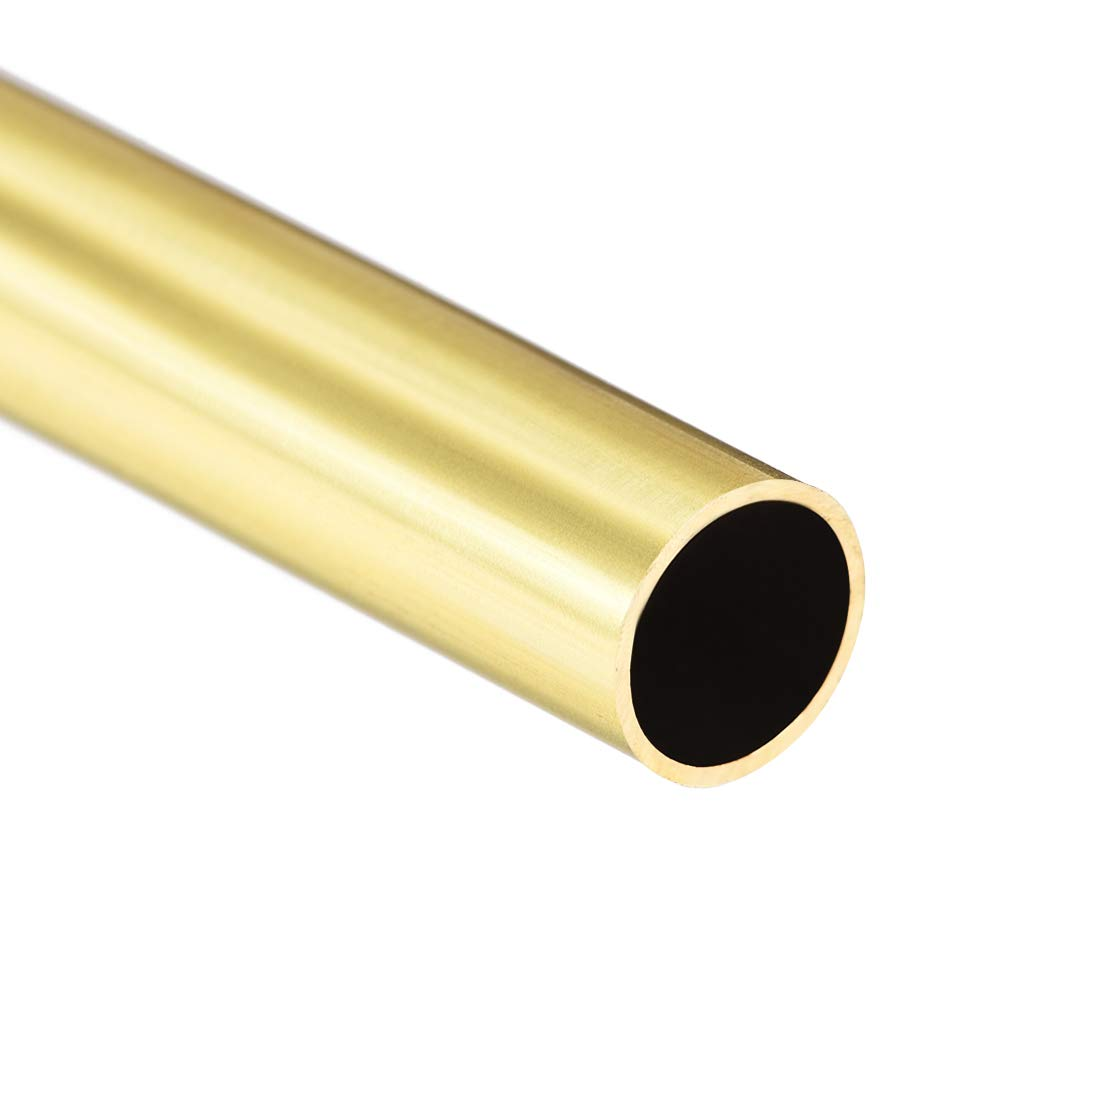 uxcell Brass Round Tube 300mm Length 8mm OD 0.5mm Wall Thickness Seamless Straight Pipe Tubing 2 Pcs